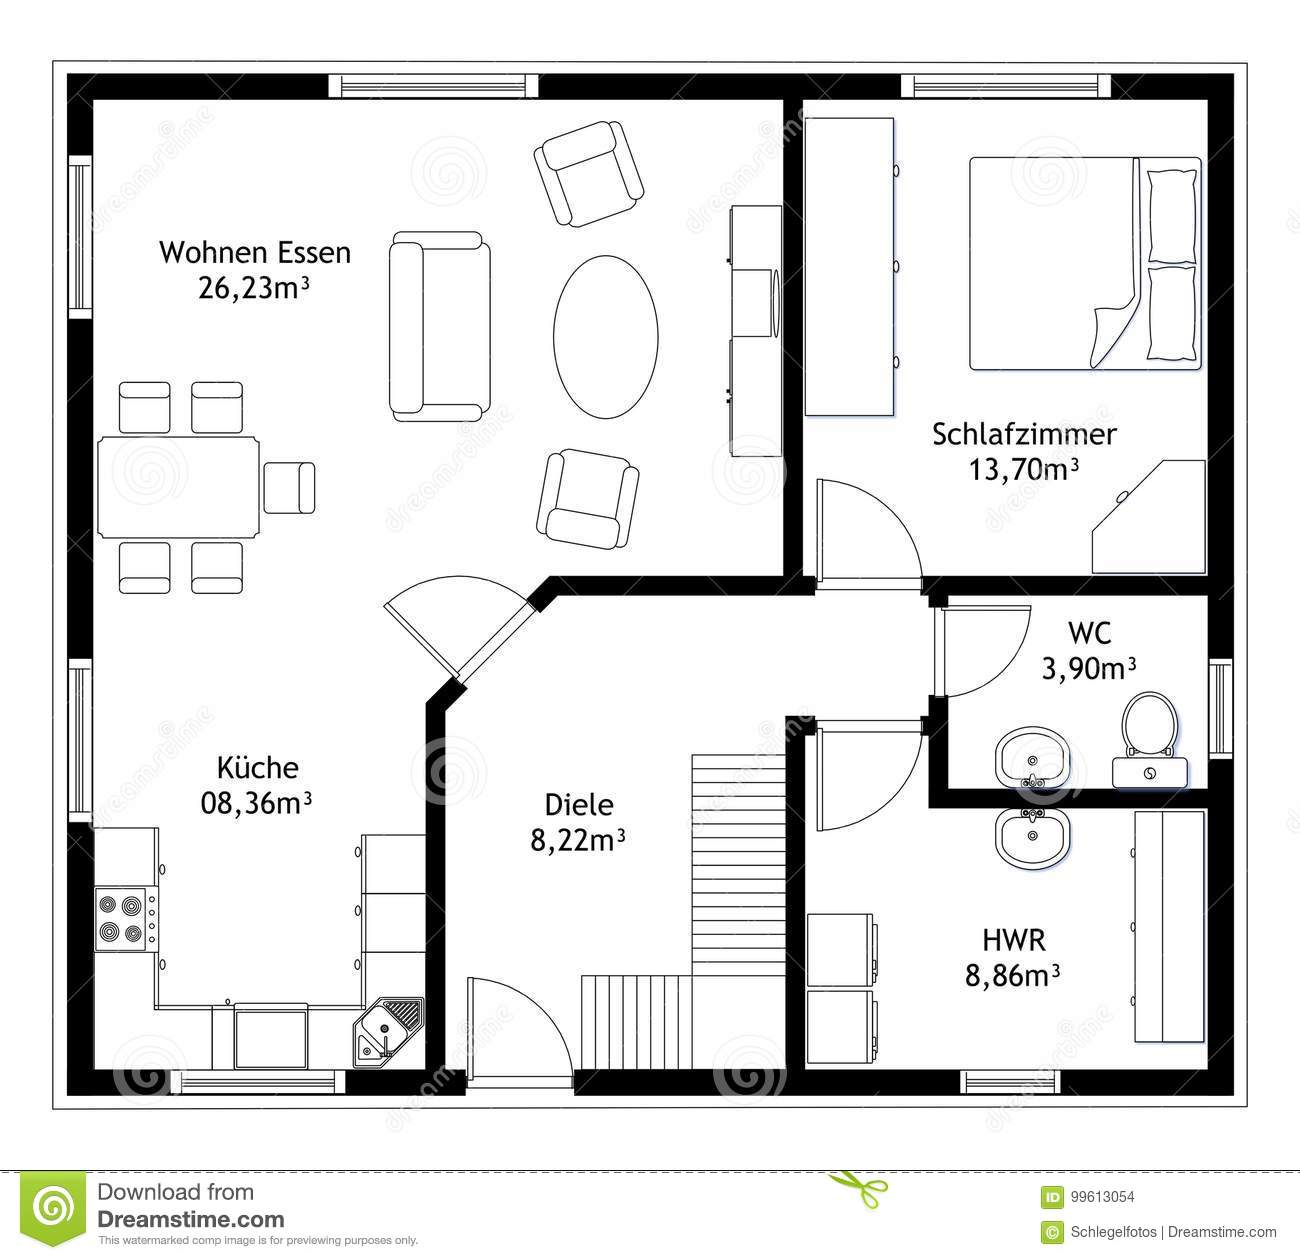 Technical drawing home floor plan stock vector for Who draws house plans